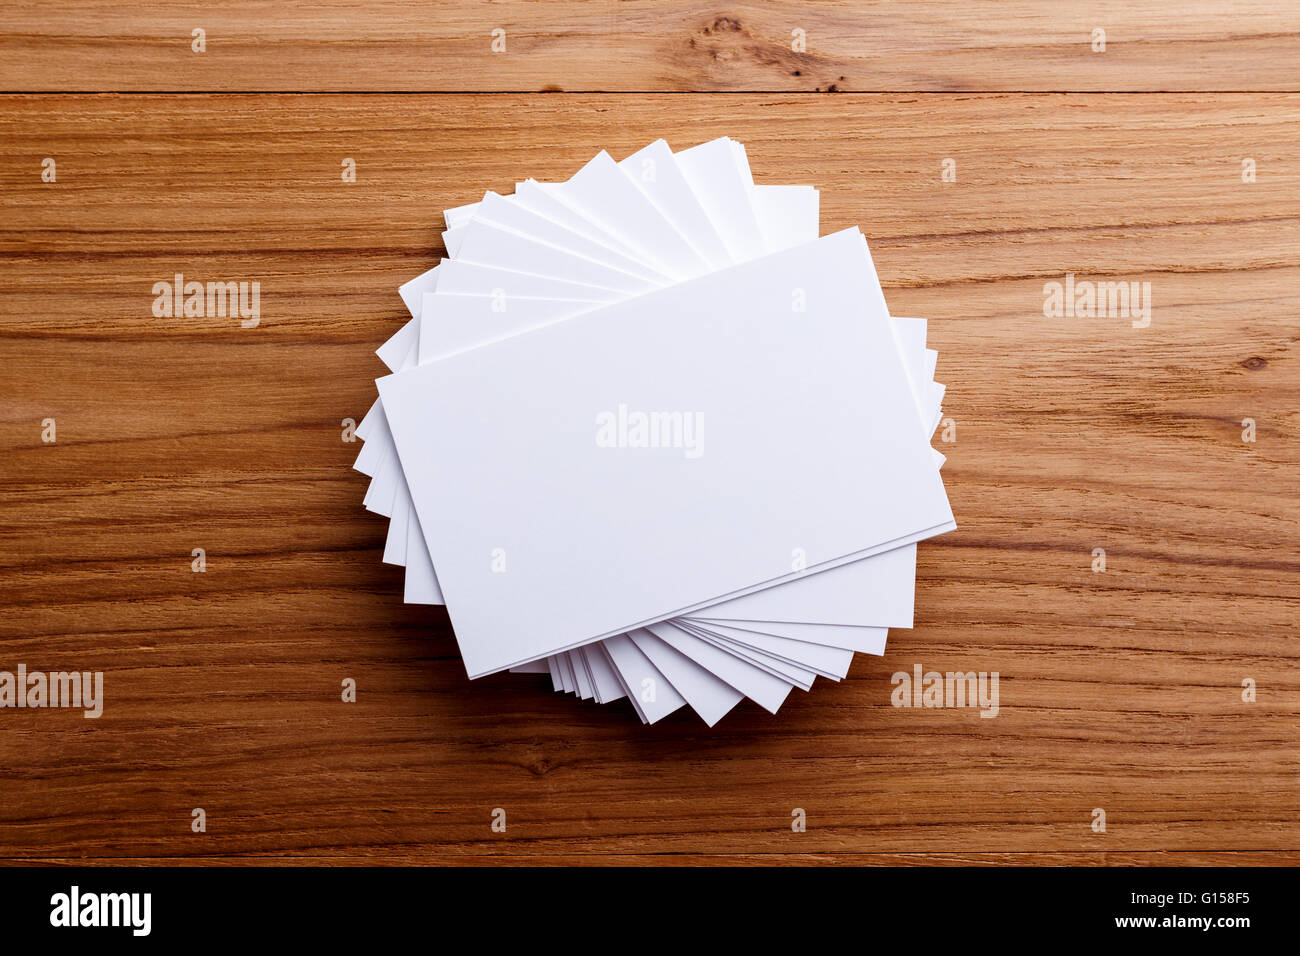 Business card stack blank mockup on wood desk stock photo 103993321 business card stack blank mockup on wood desk reheart Gallery